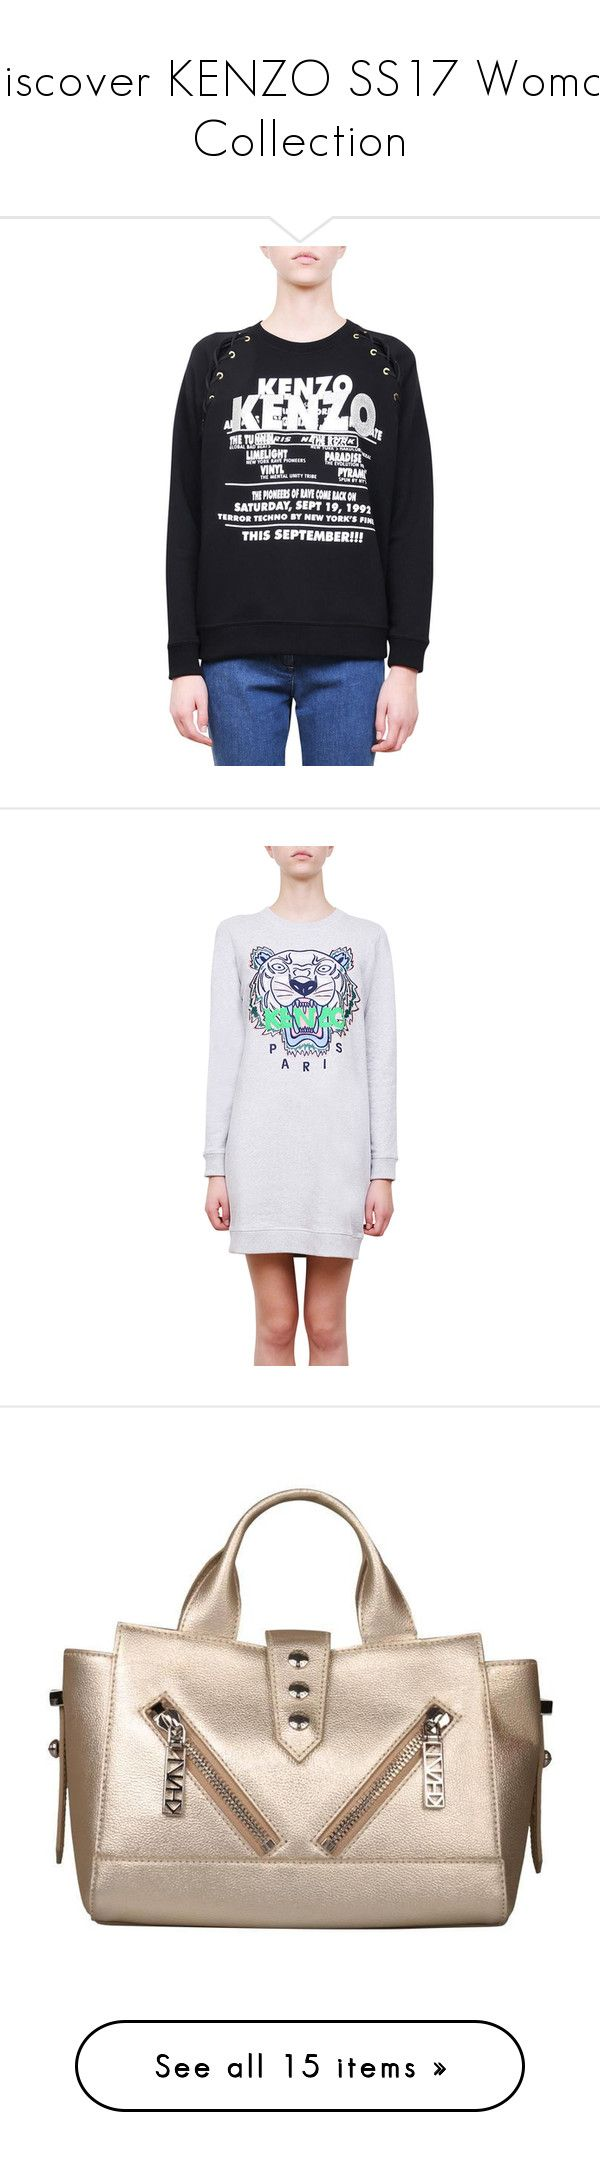 """""""Discover KENZO SS17 Woman Collection"""" by lindelepalais ❤ liked on Polyvore featuring tops, hoodies, sweatshirts, nero, summer tops, kenzo, summer sweatshirts, cotton sweatshirts, ribbed top and dresses"""